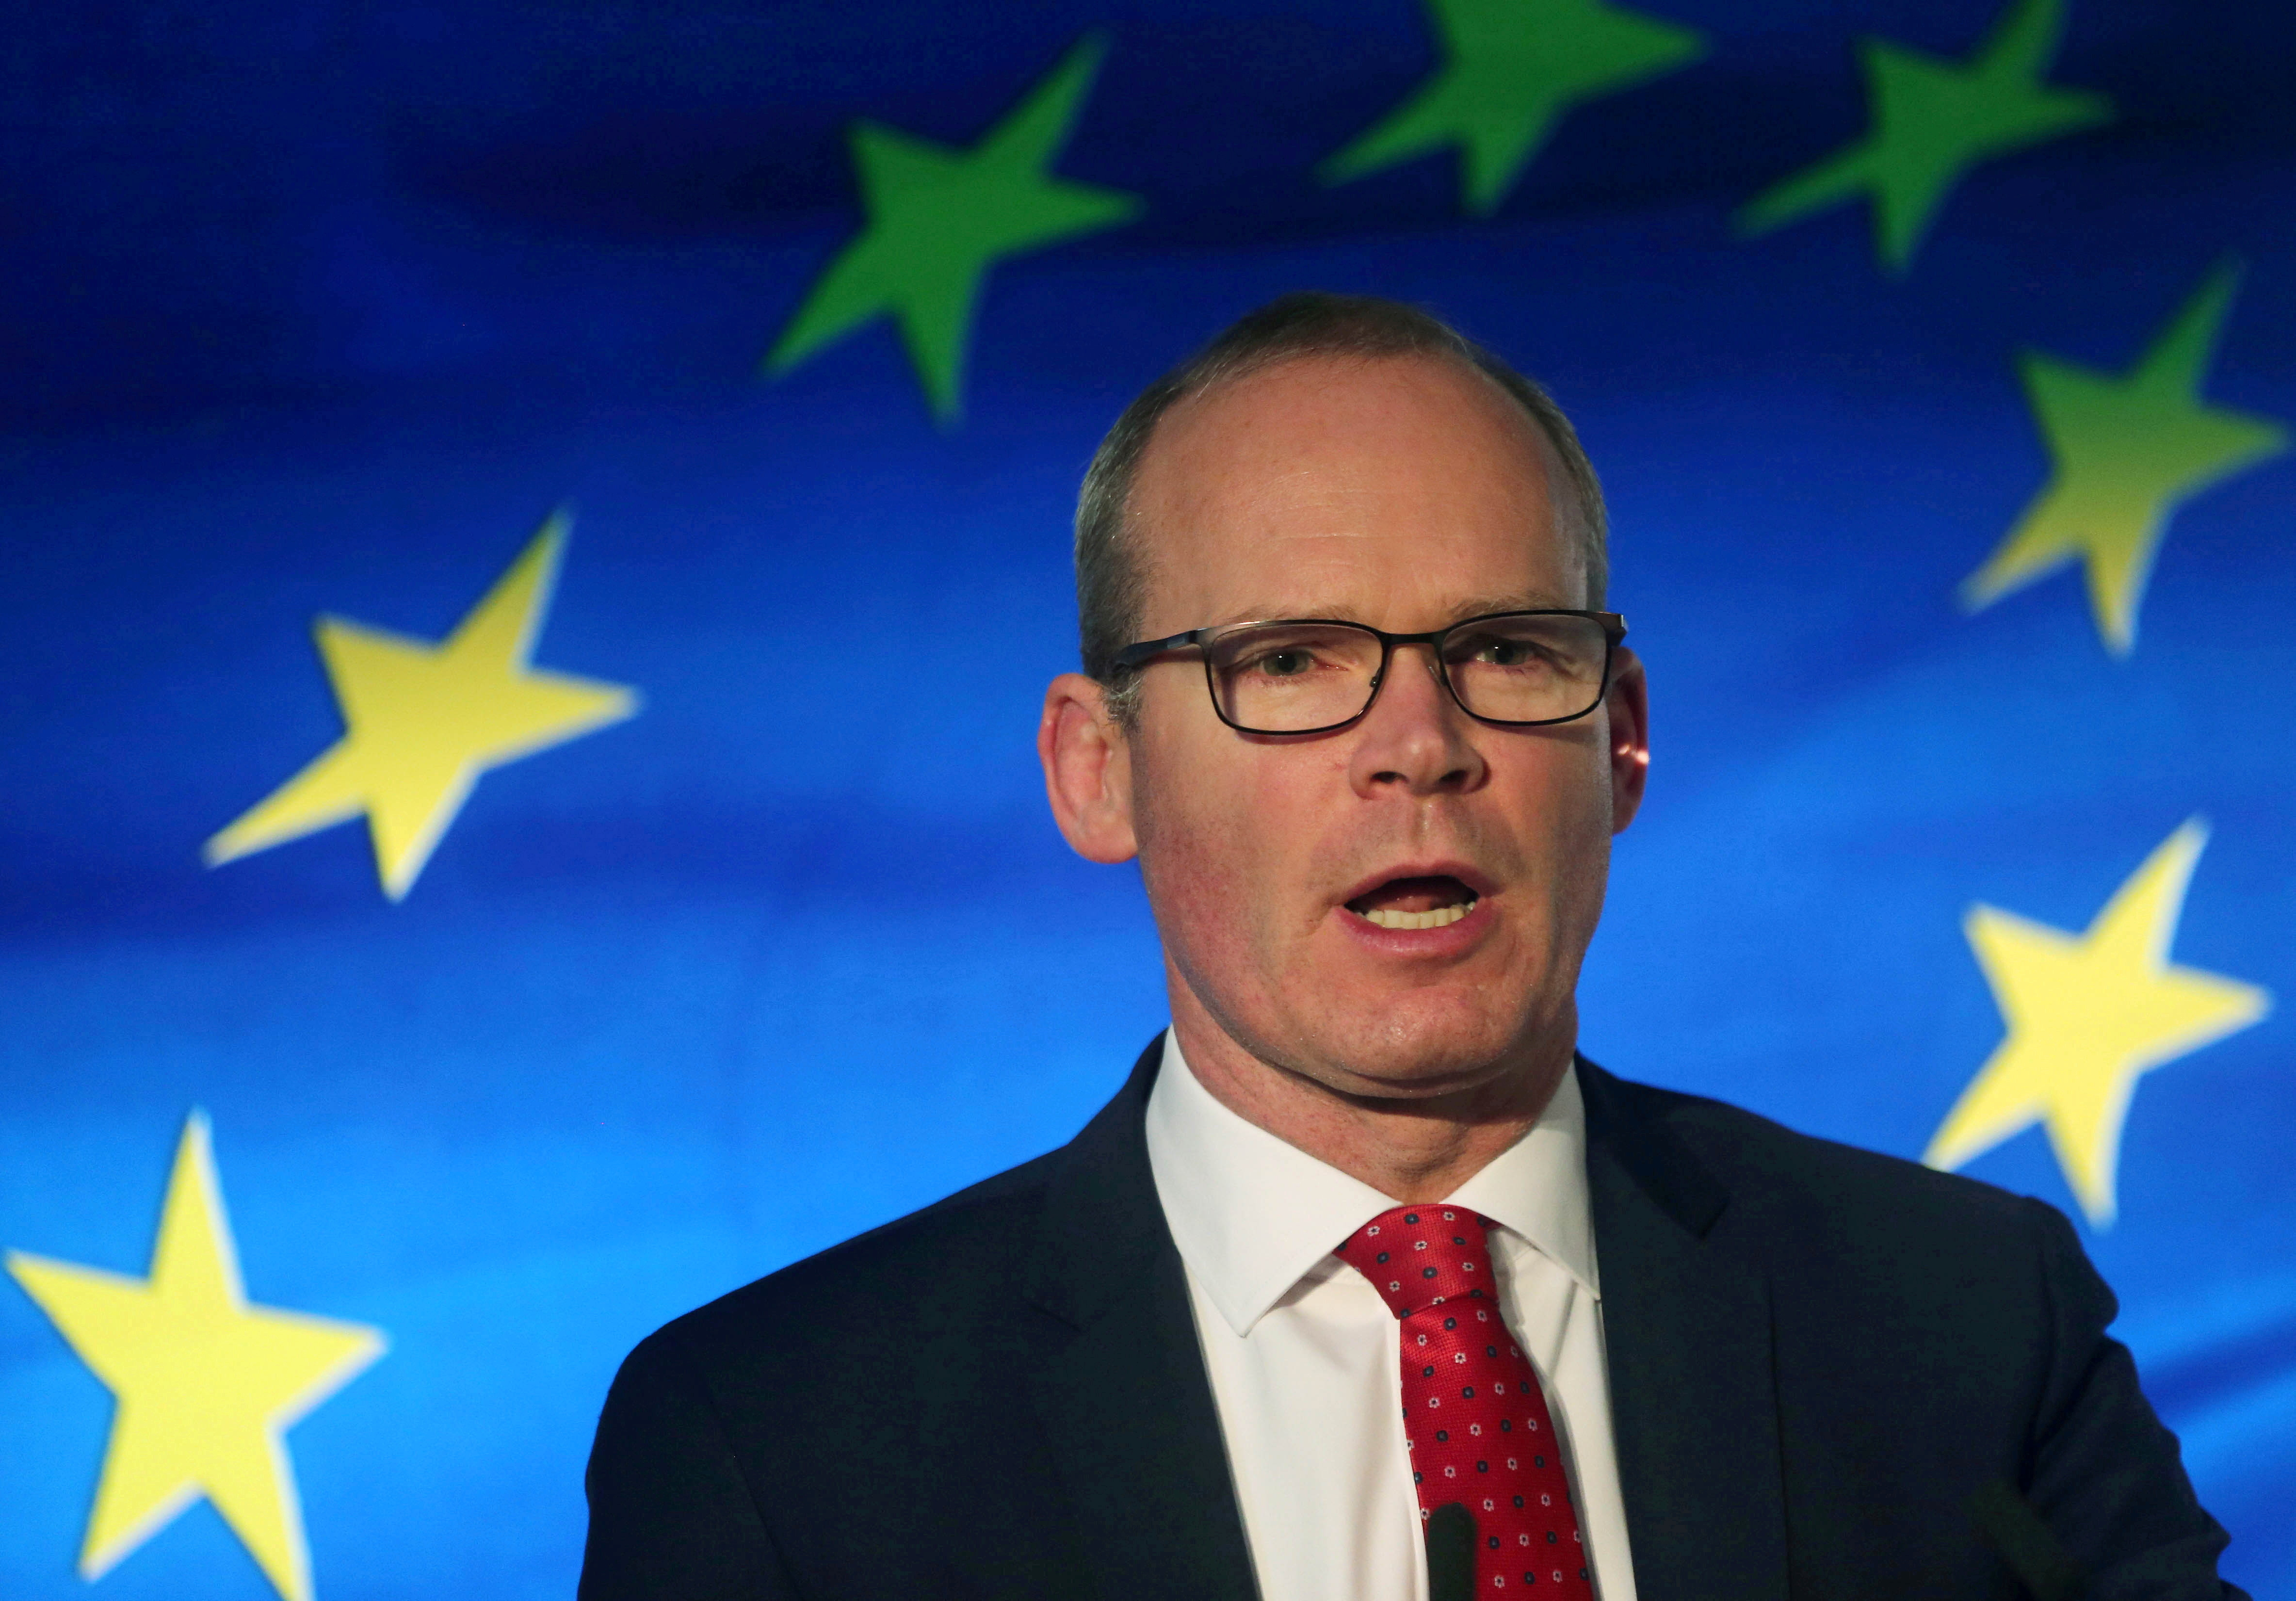 Irish Minister for Foreign Affairs Simon Coveney speaks at the launch of his party's manifesto for the Irish General Election in Dublin, Ireland January 24, 2020. REUTERS/Lorraine O'Sullivan/File Photo